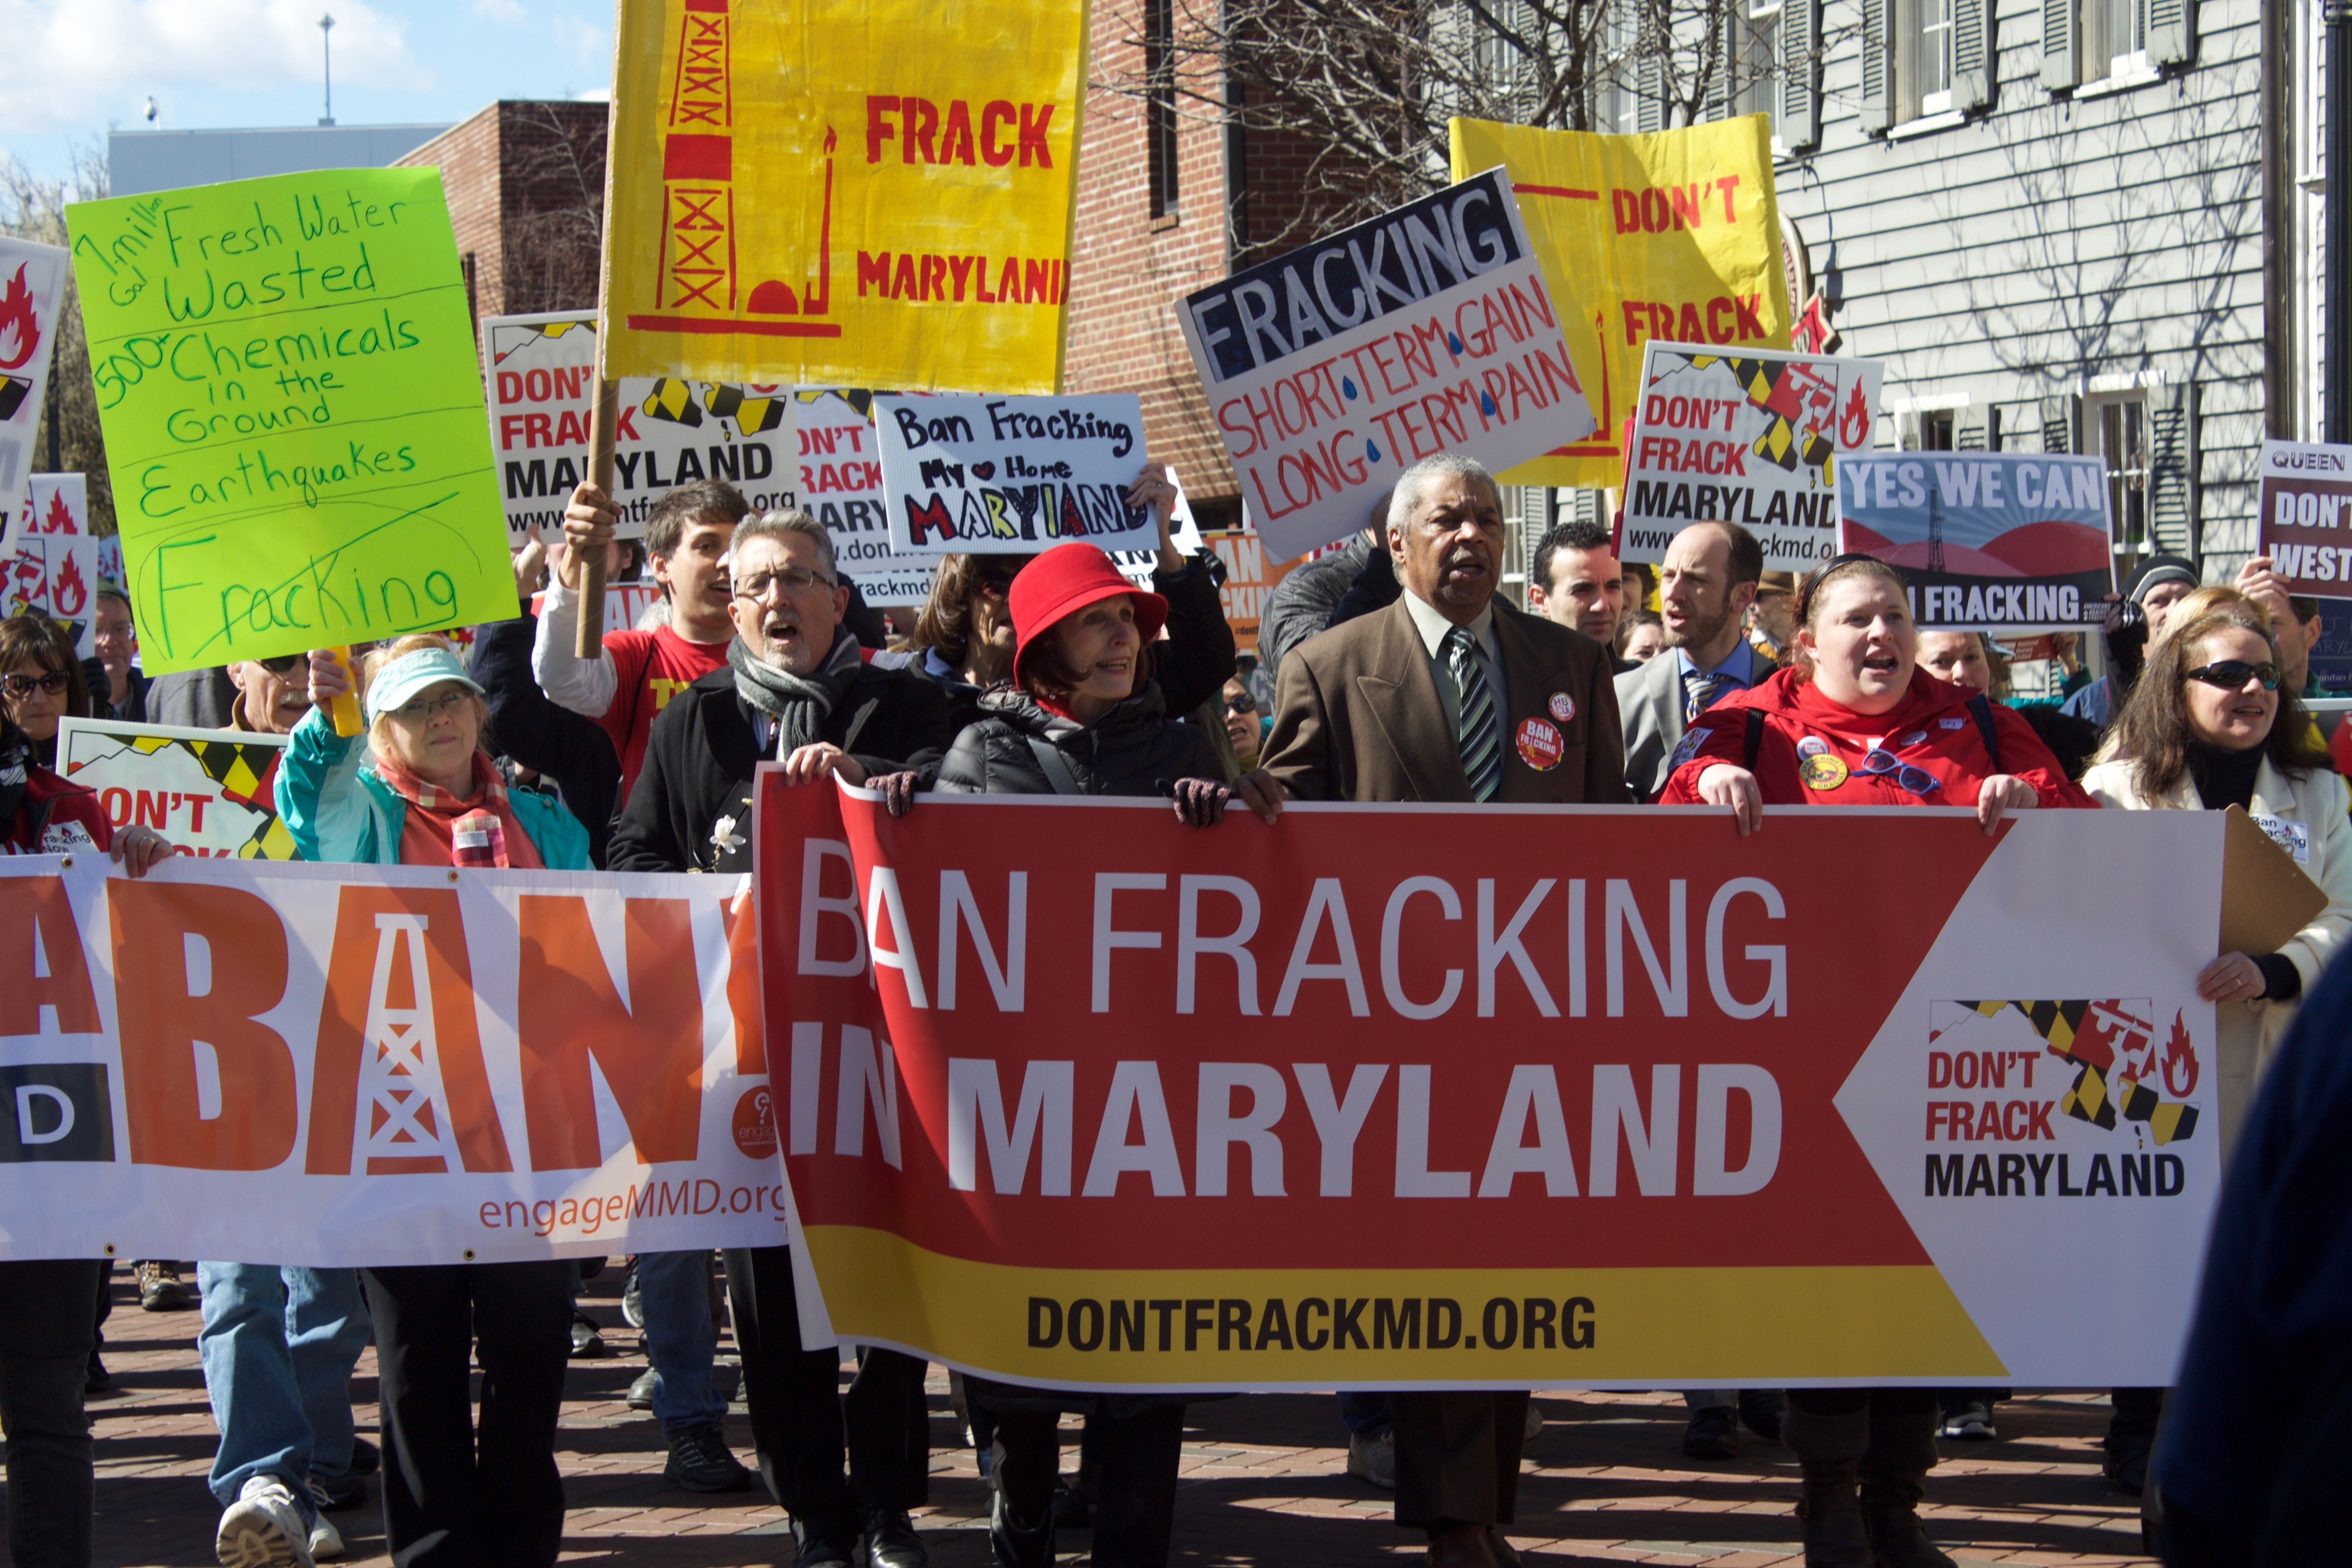 March 2 March on Annapolis to Ban Fracking